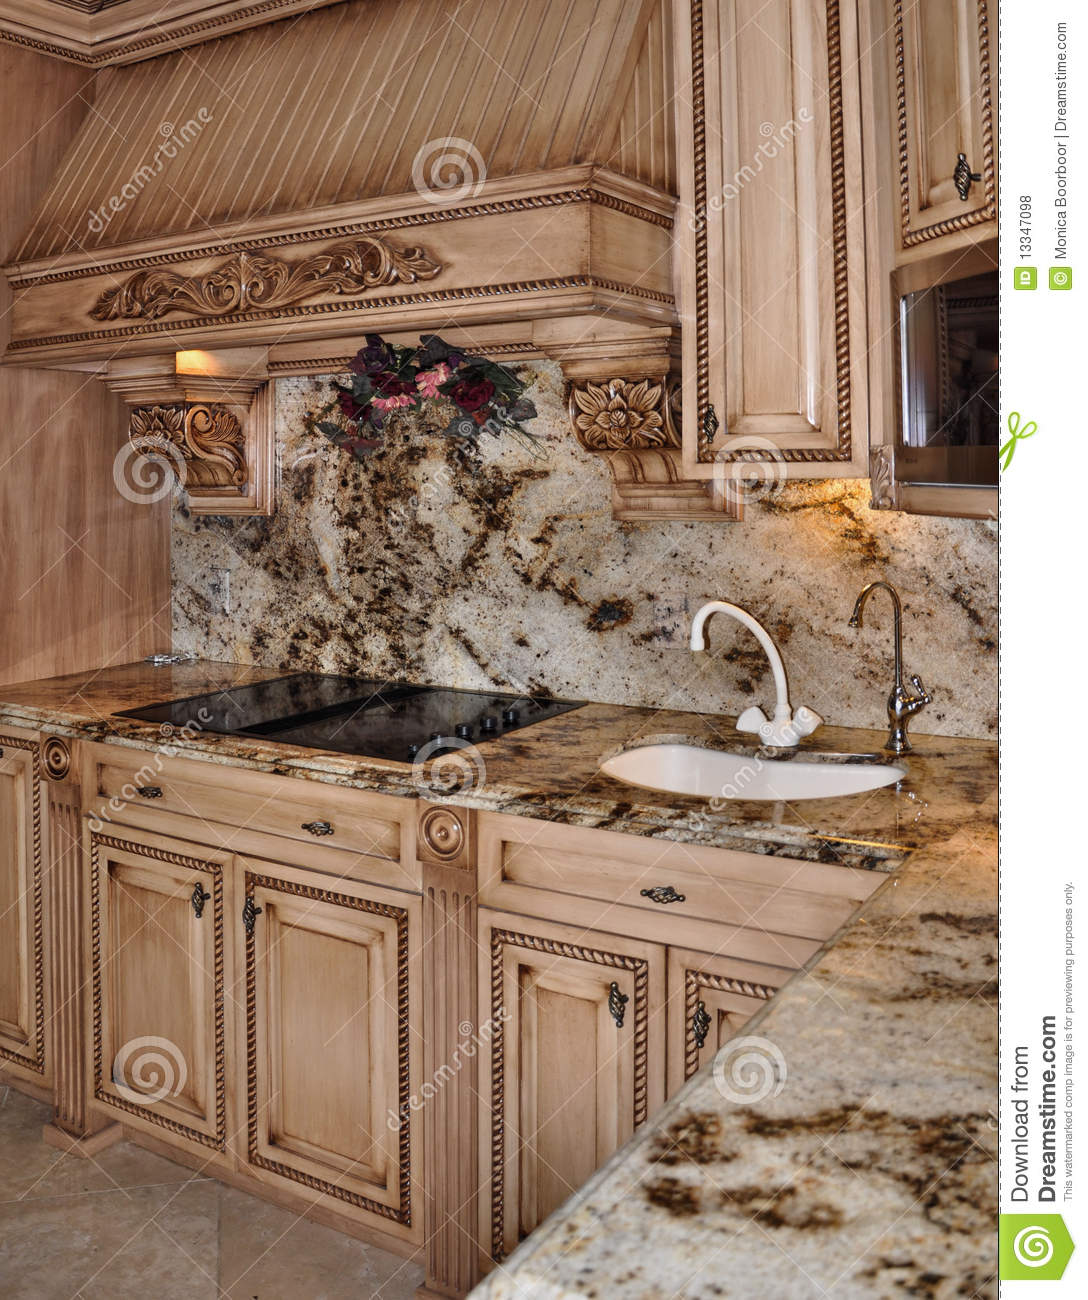 kitchen granite range and hood design royalty free stock